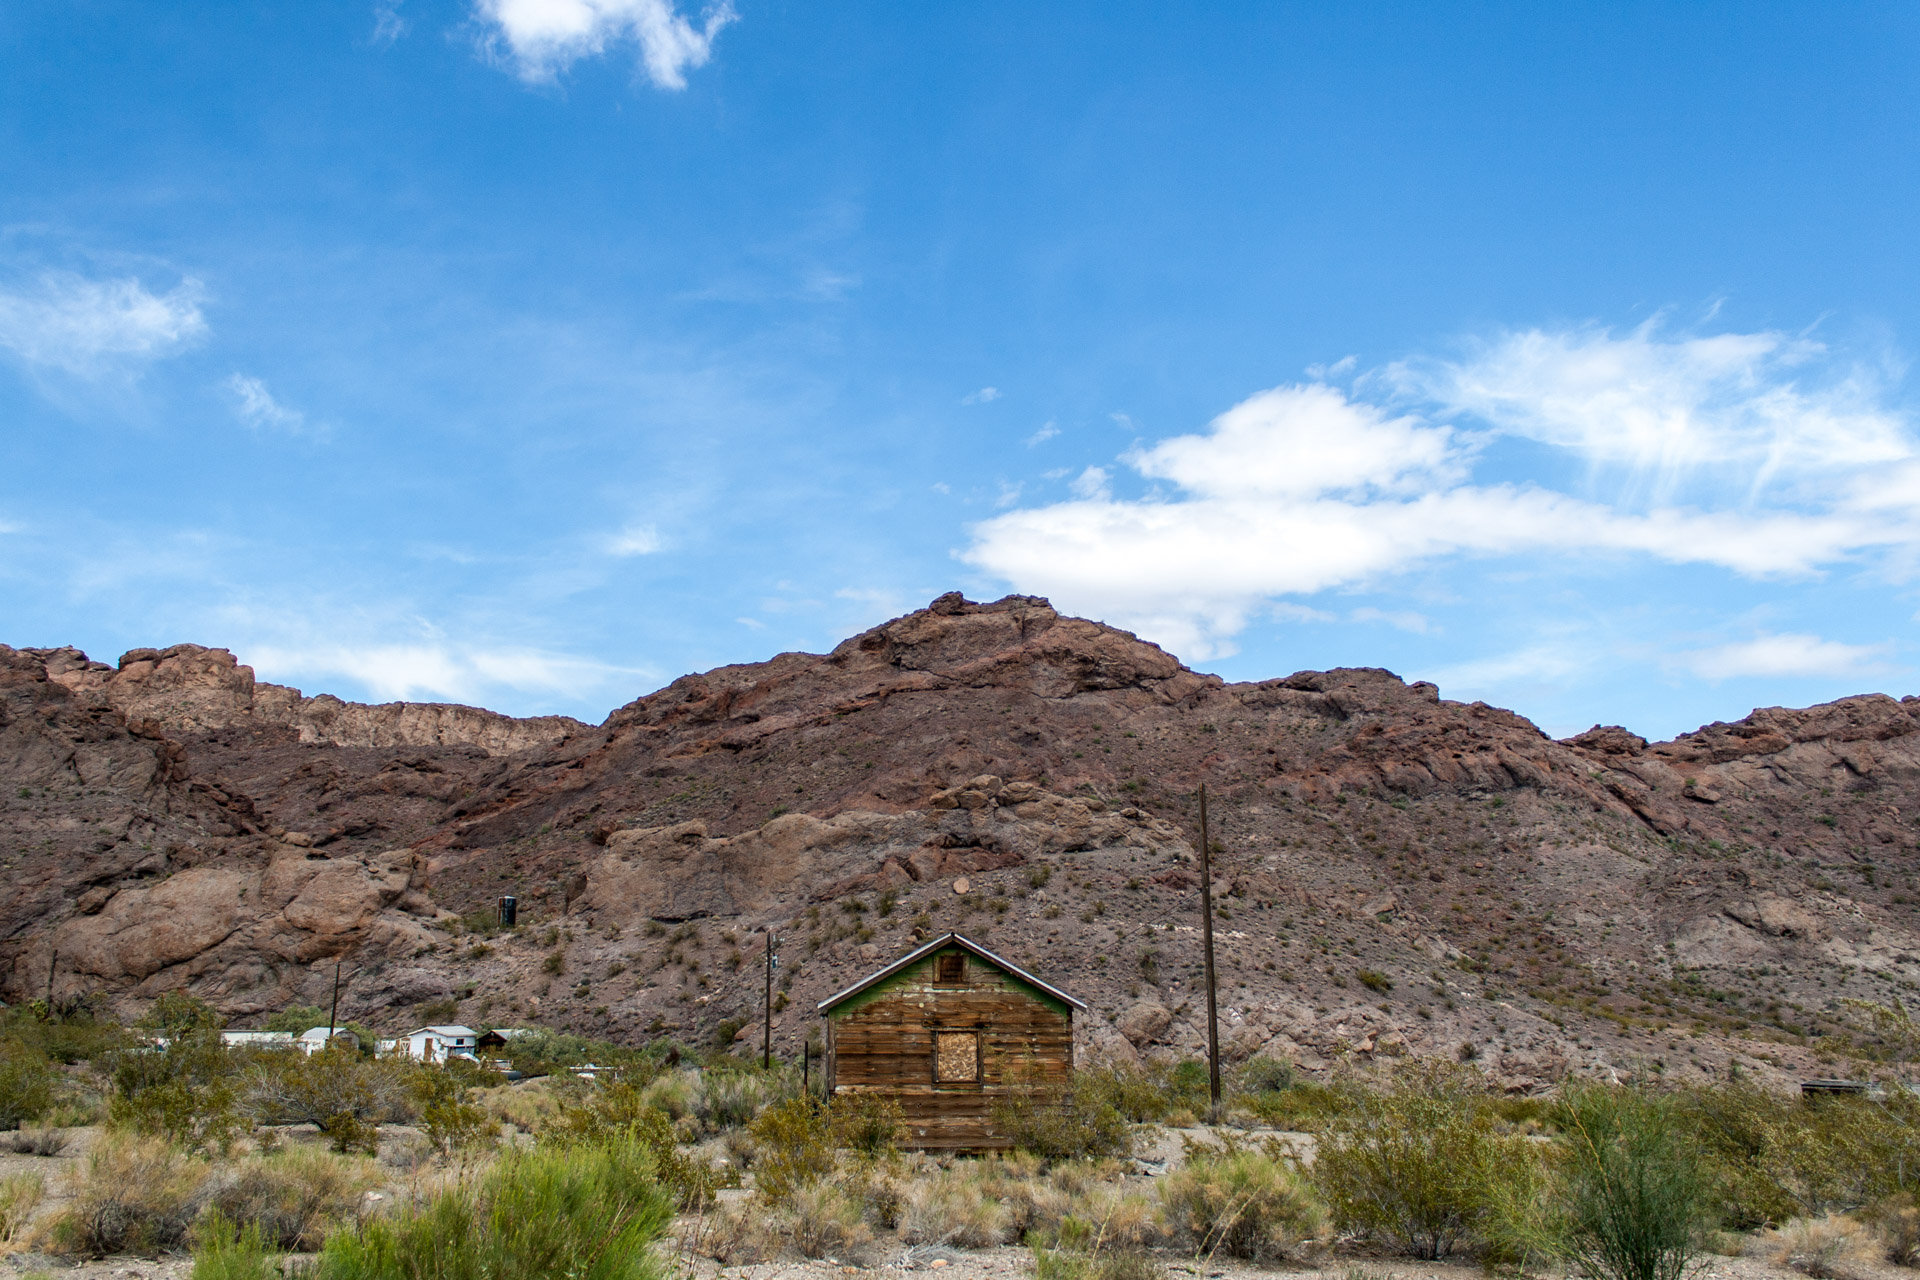 Nelson, Nevada - A Weathered Mining Town House (straight far)